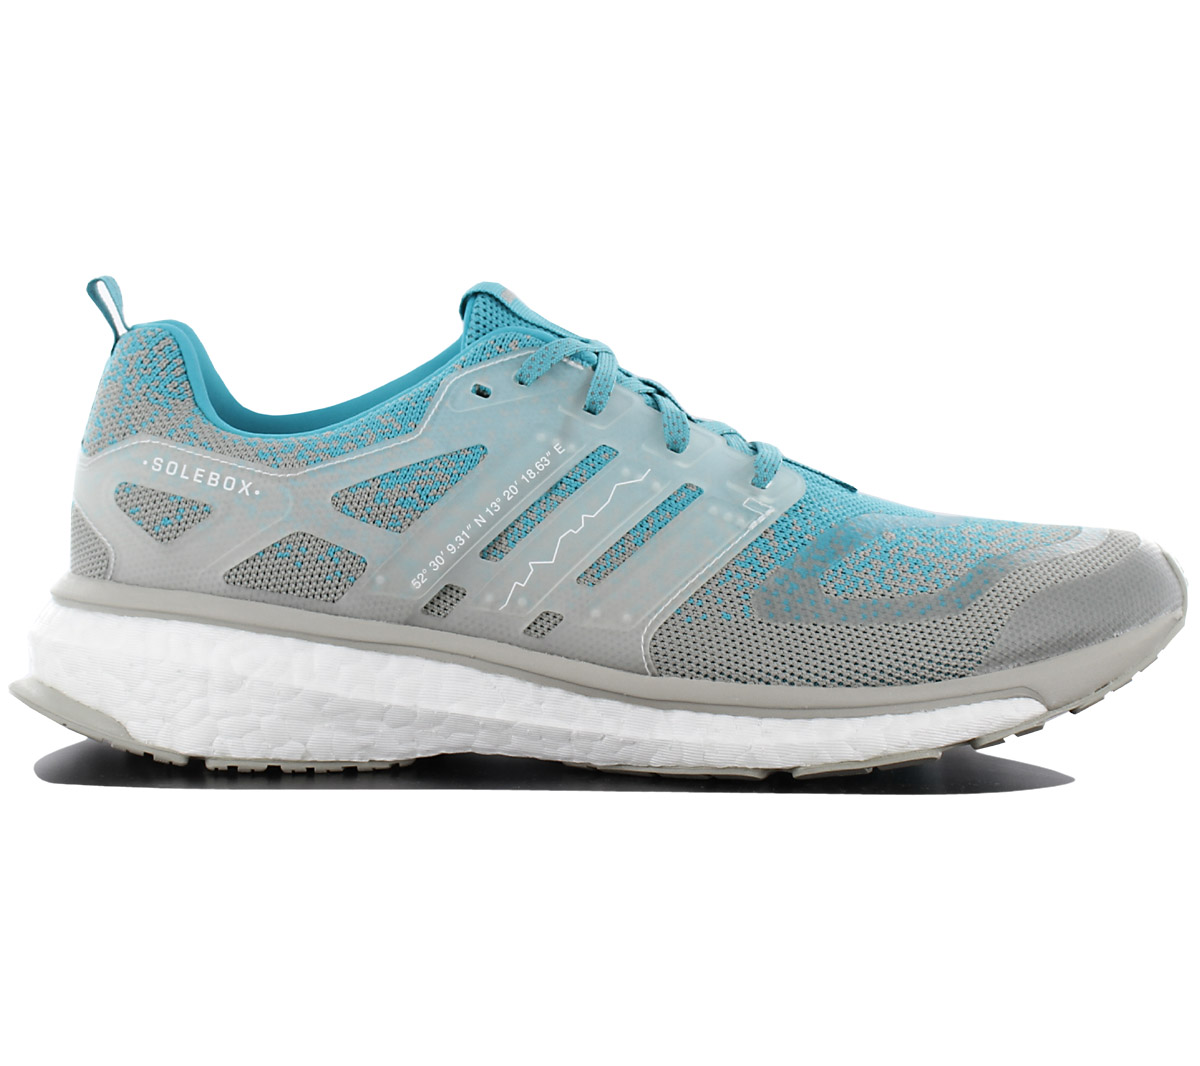 64ef1523f Adidas Energy Boost S.E.Packer x Solebox Men s Shoes Trainers Cp9762 ...